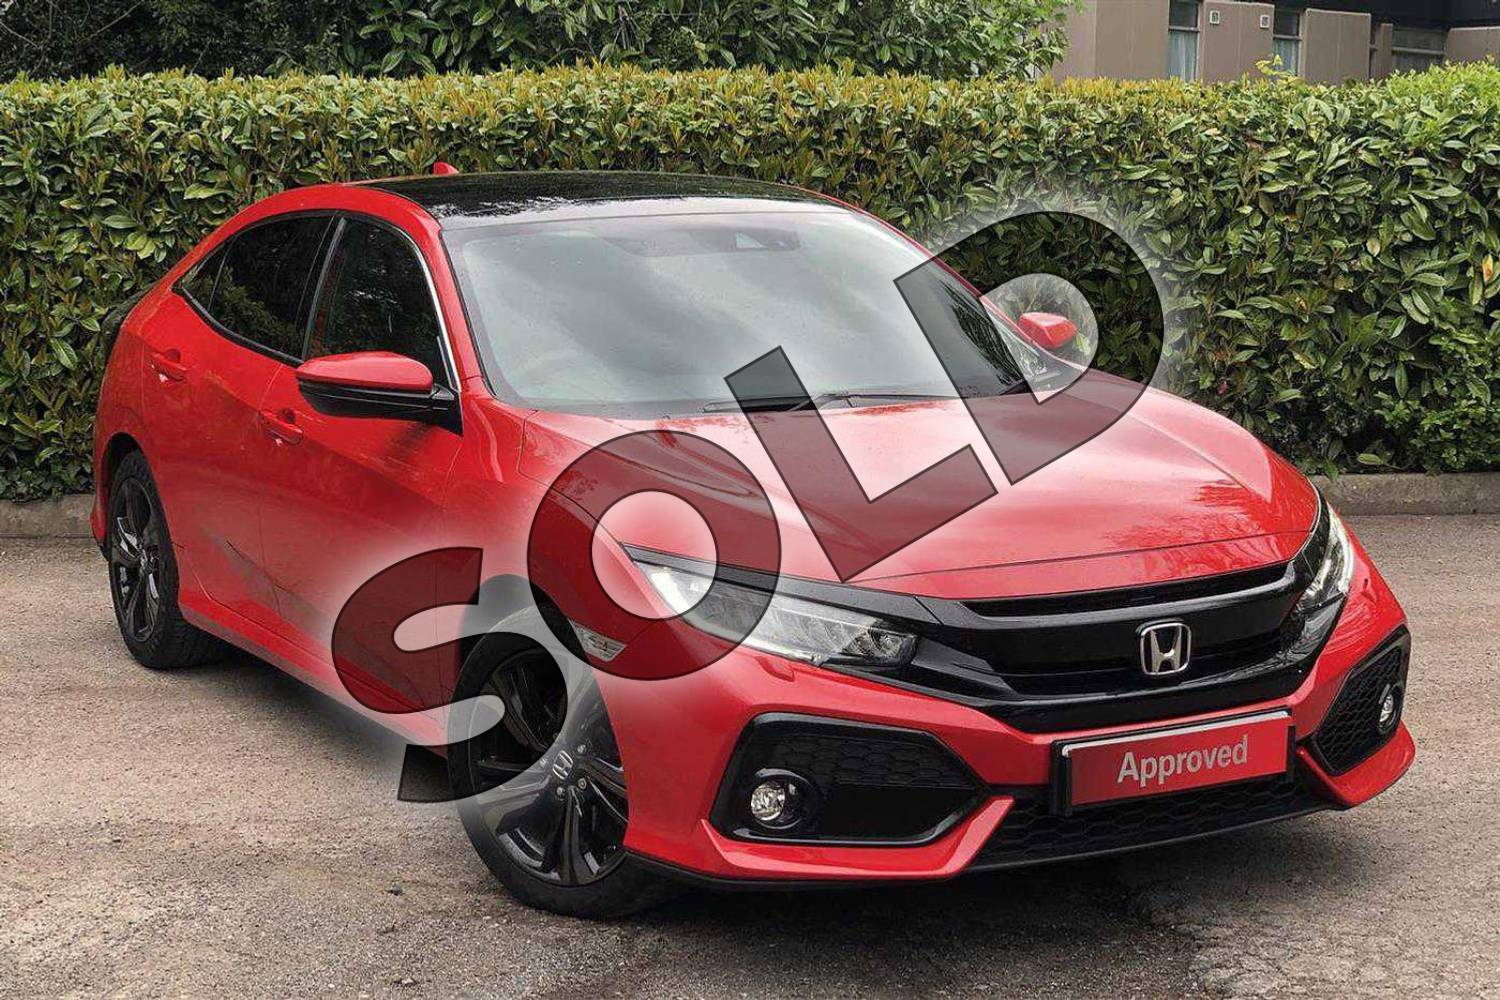 2018 Honda Civic Diesel Hatchback Diesel 1.6 i-DTEC EX 5dr Auto  in Rallye Red  at Listers Honda Coventry